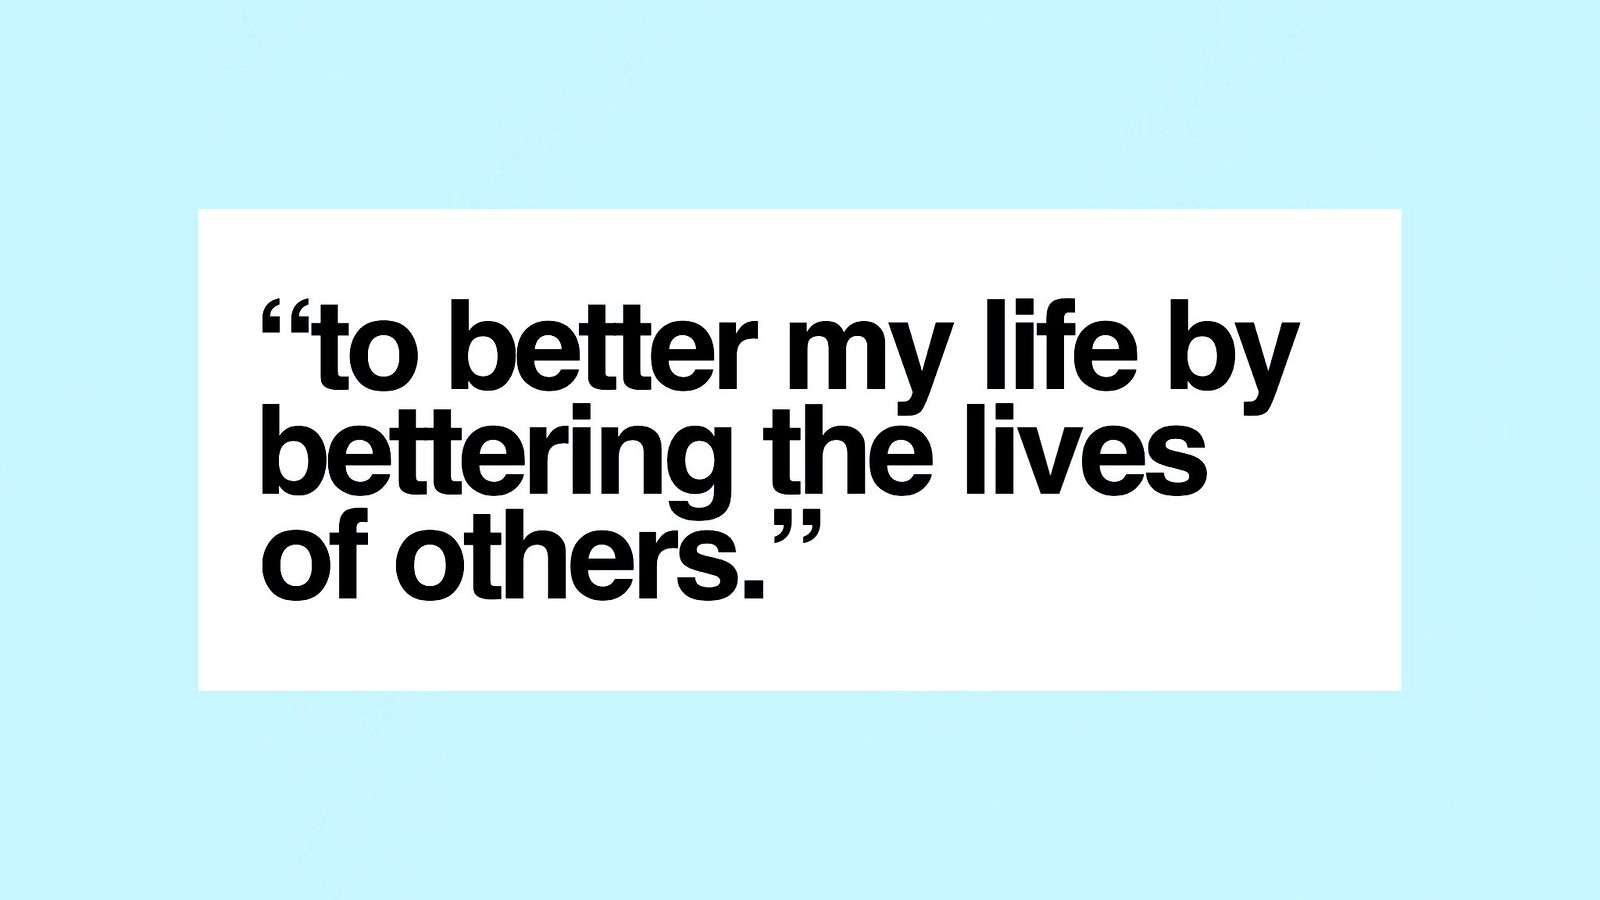 To better my life by bettering the lives of others.